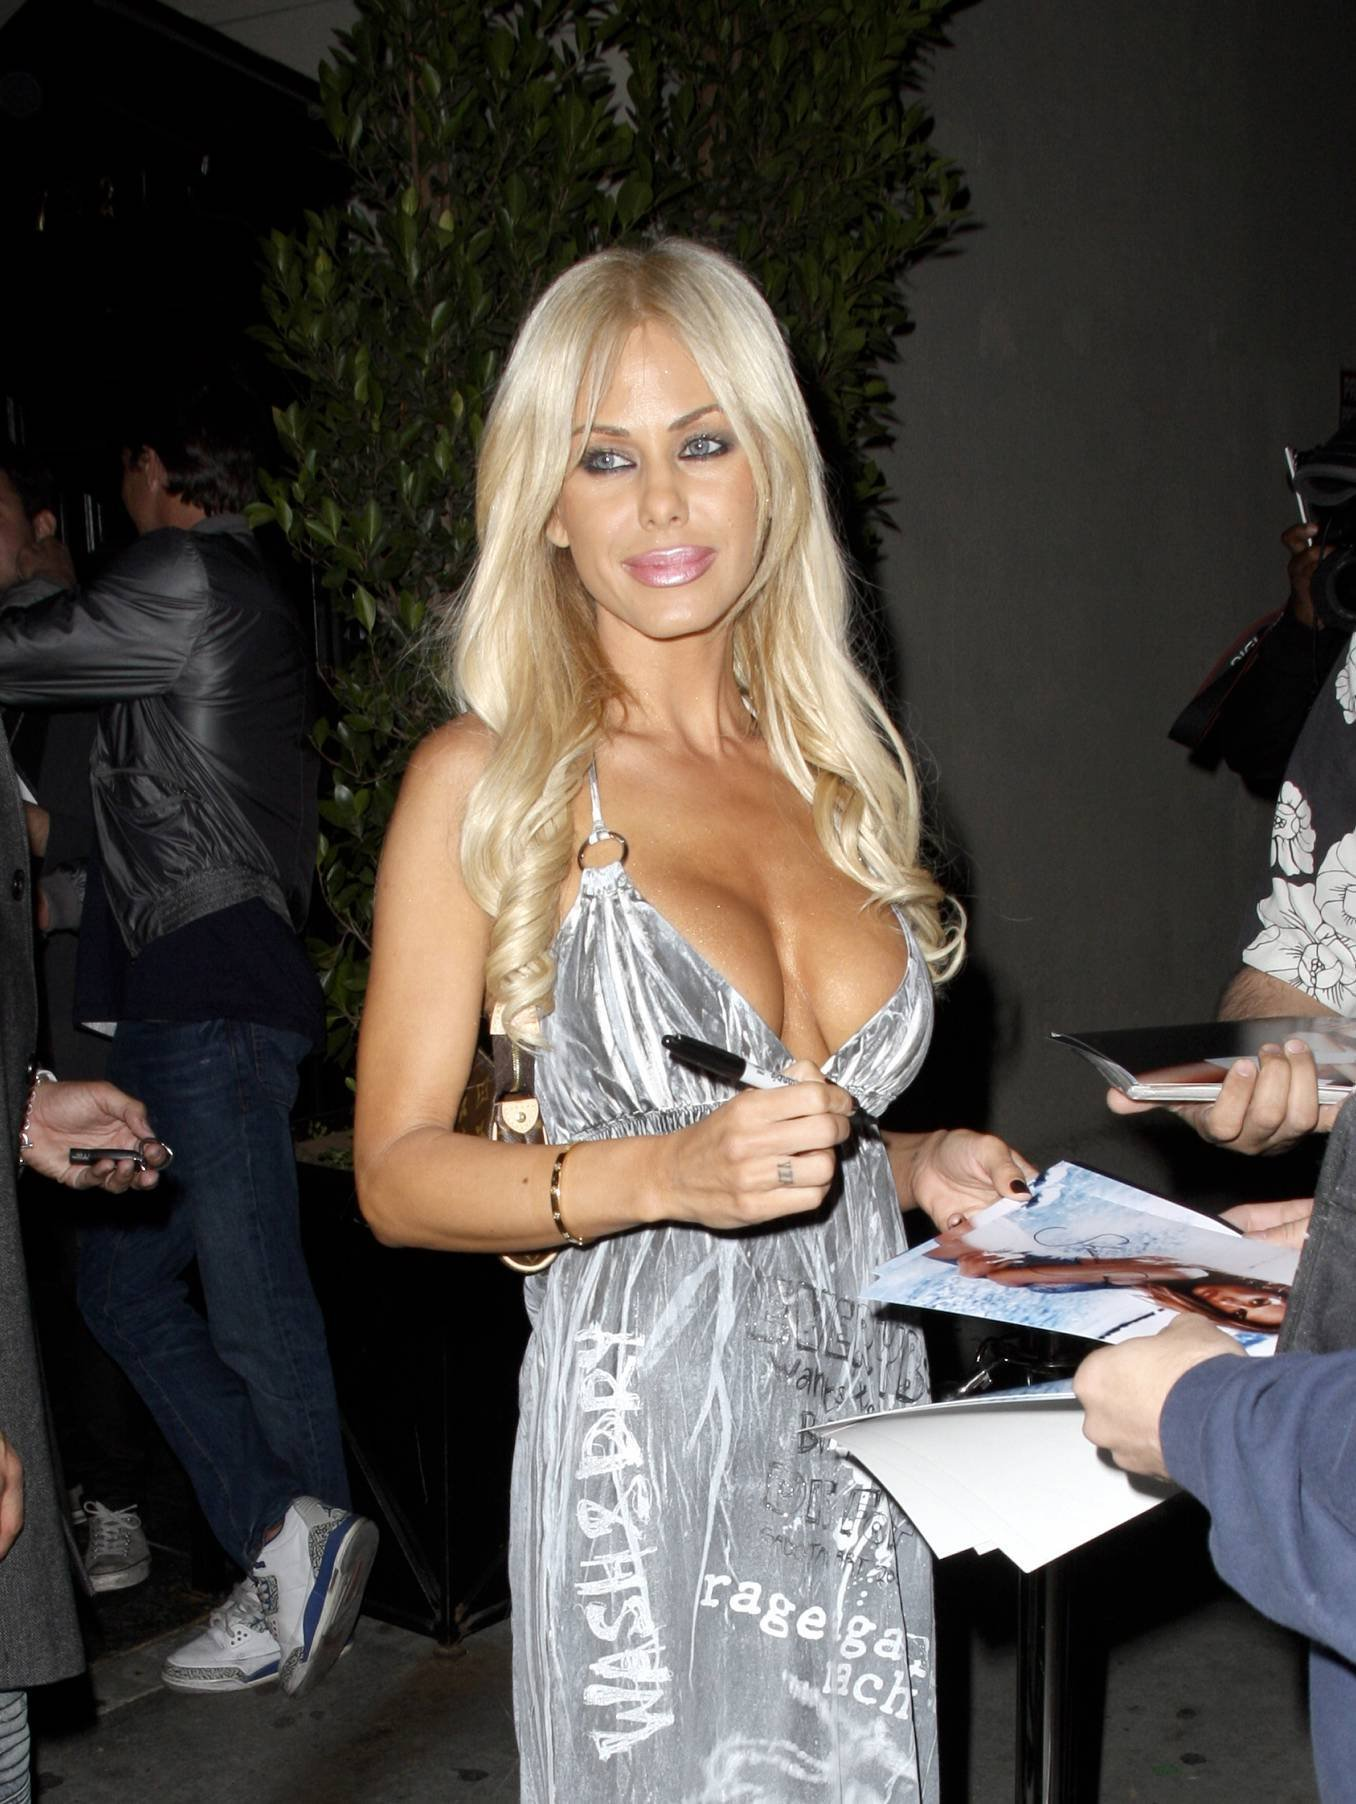 08621_Celebutopia-Shauna_Sand_signs_autographs_at_Crown_Bar_in_Los_Angeles-01_122_647lo.jpg